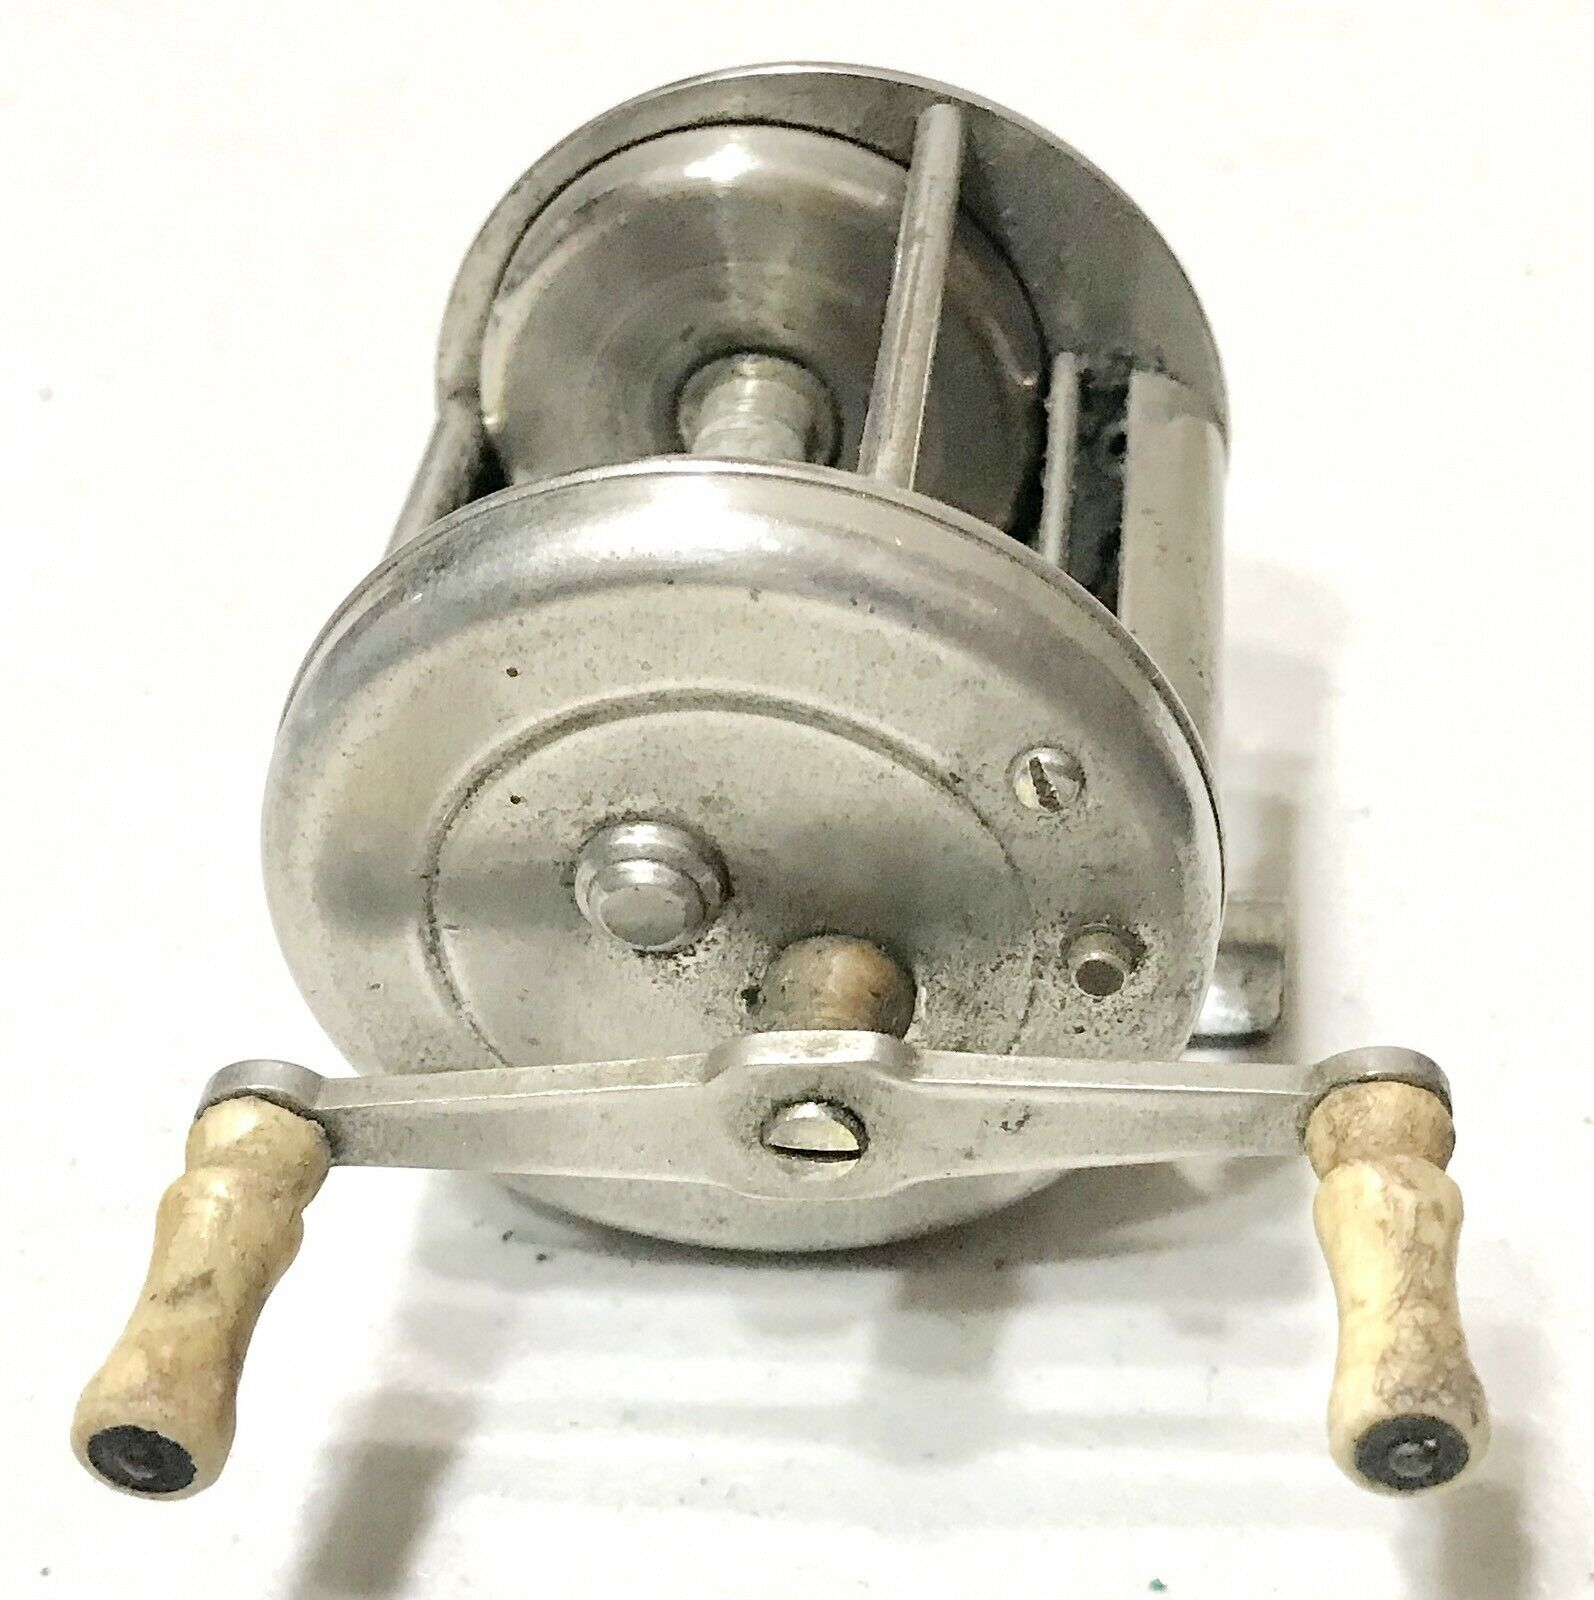 Vintage Antique Bronson Reel Mich. Modern Level Winding Cast Fishing Reel Spool